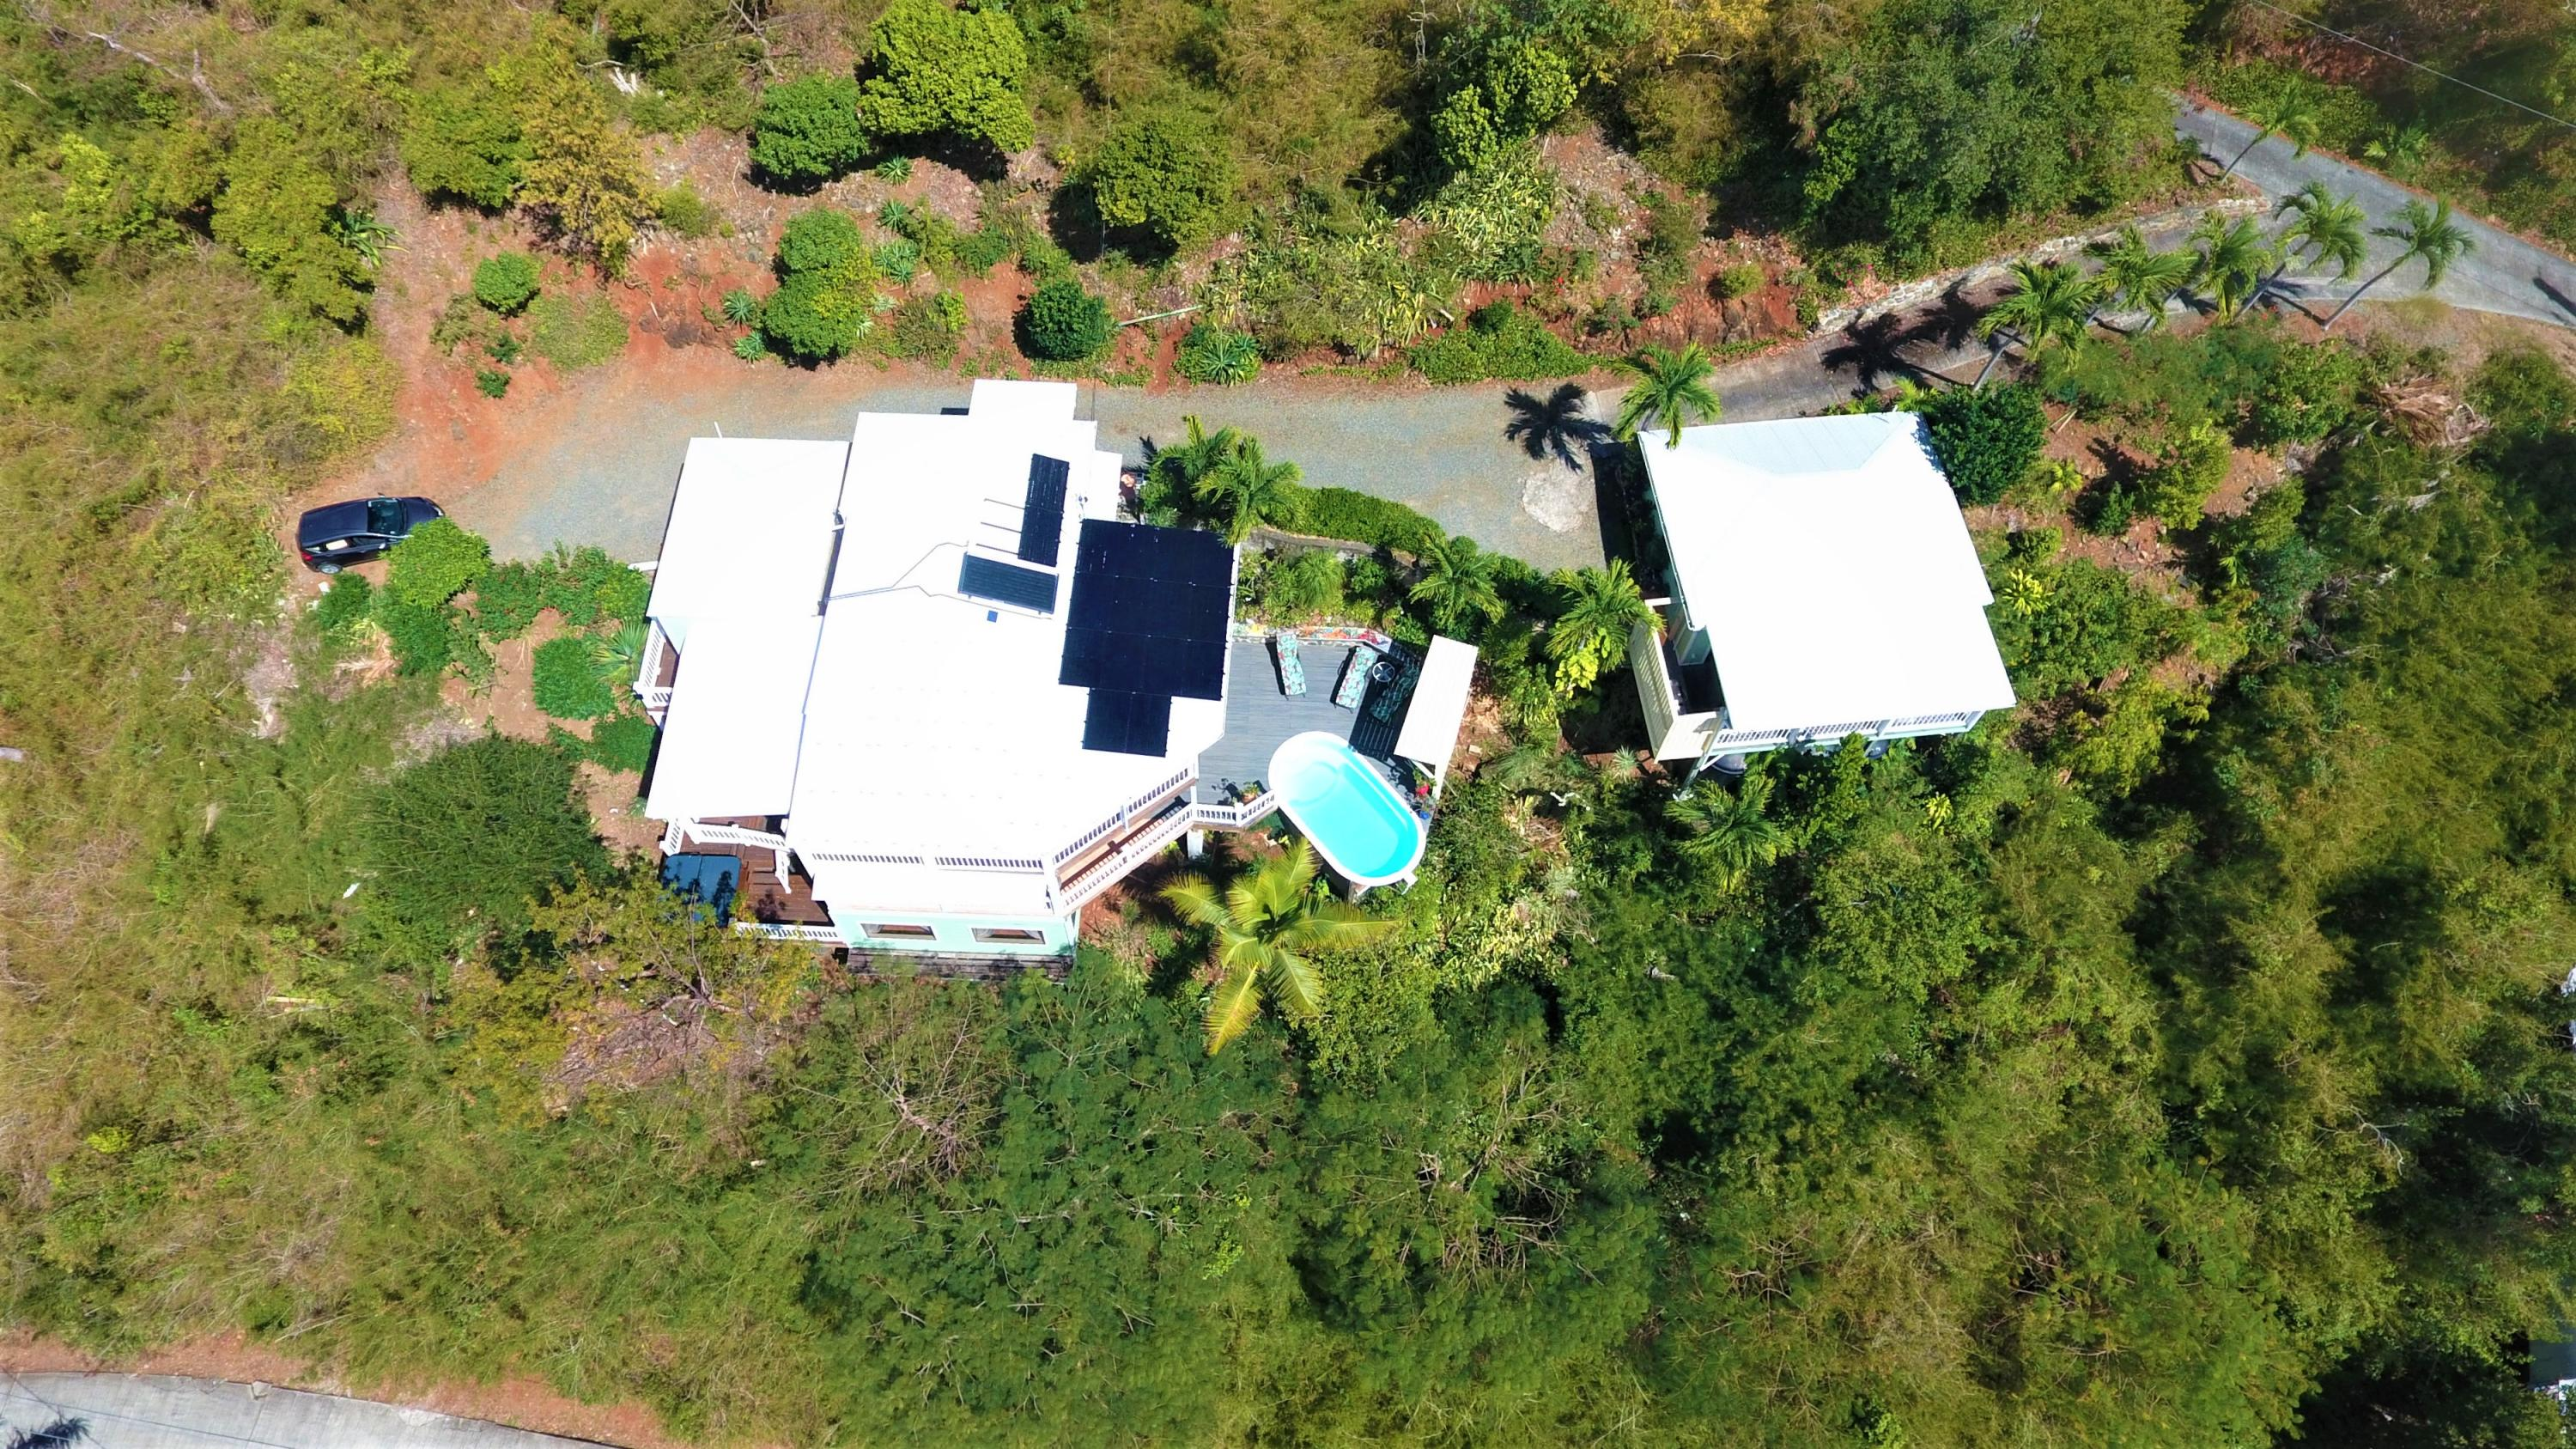 MGH Plus Cottage over view drone